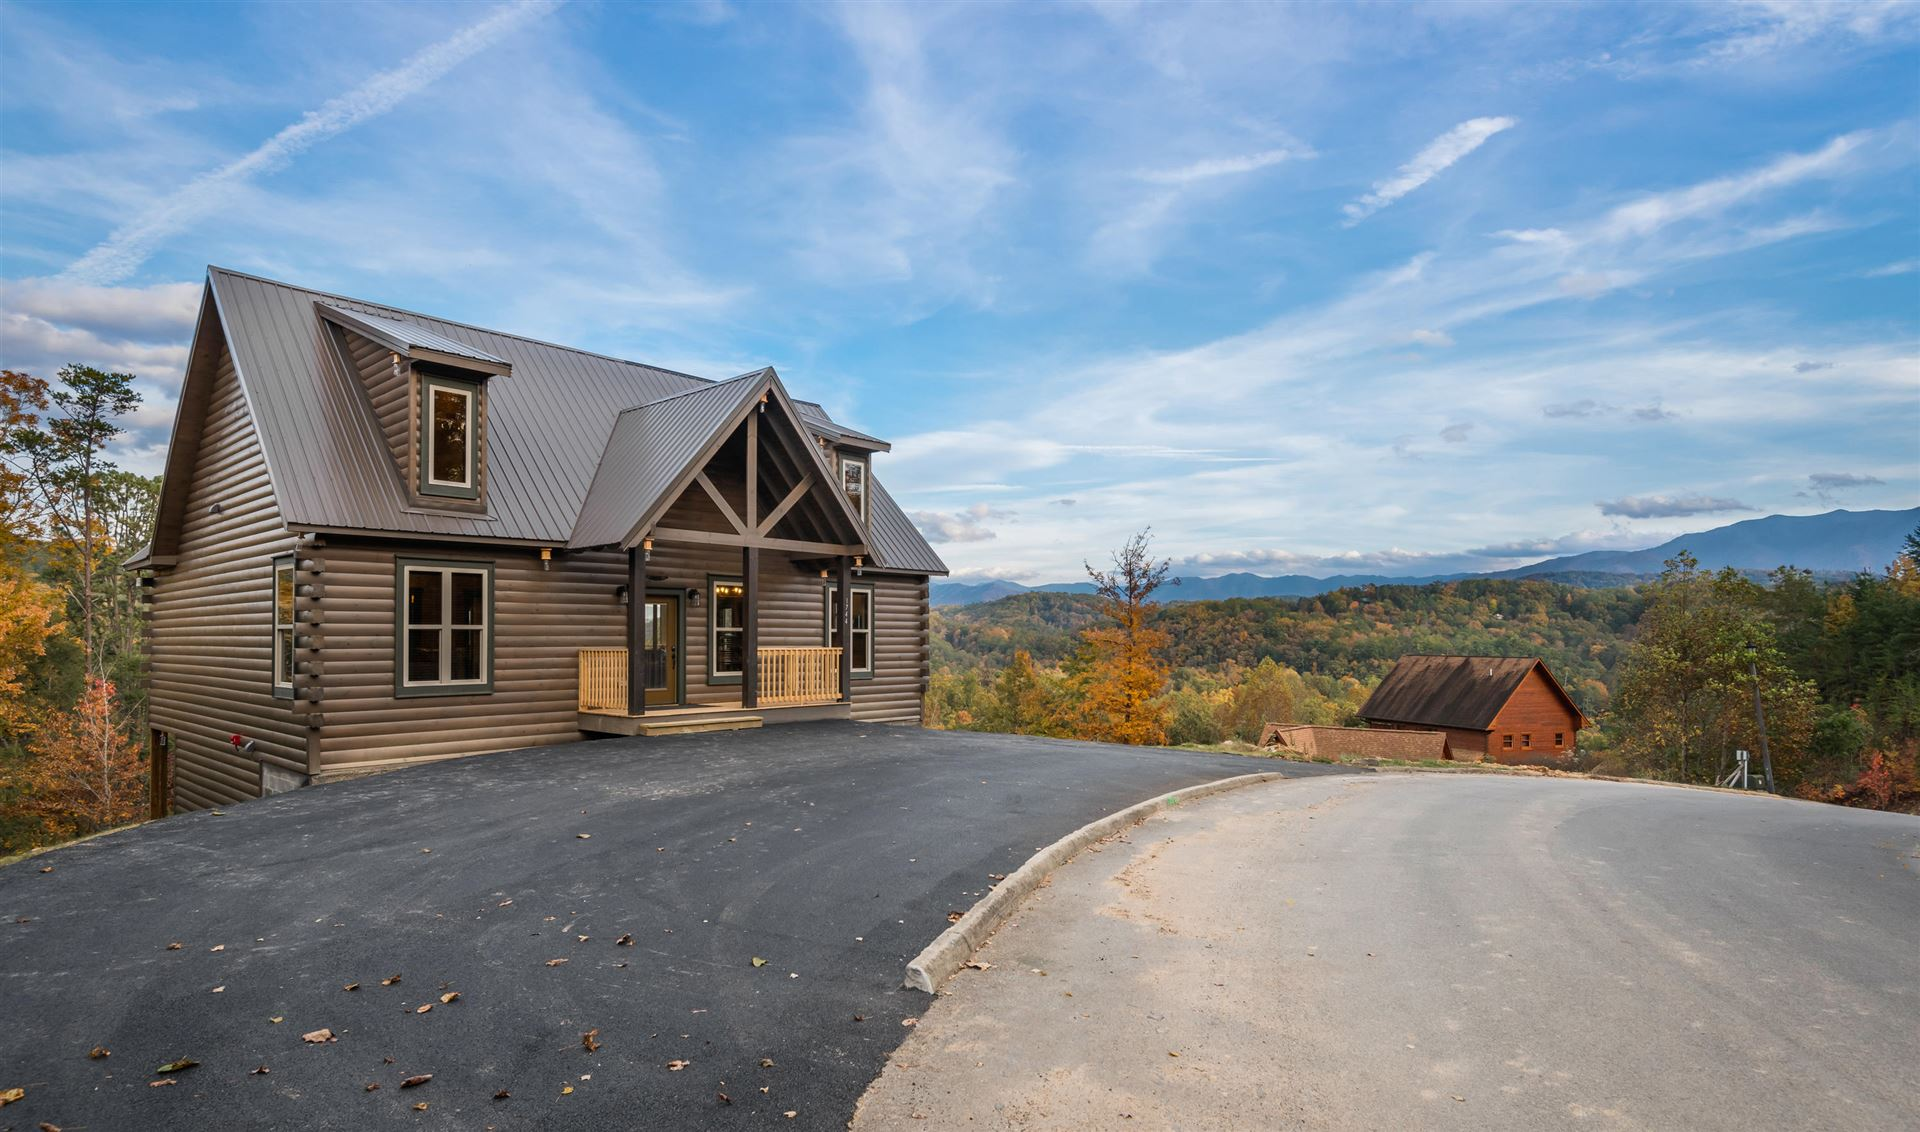 Photo of 1744 Angela Starr Drive, Sevierville, TN 37876 (MLS # 1111909)